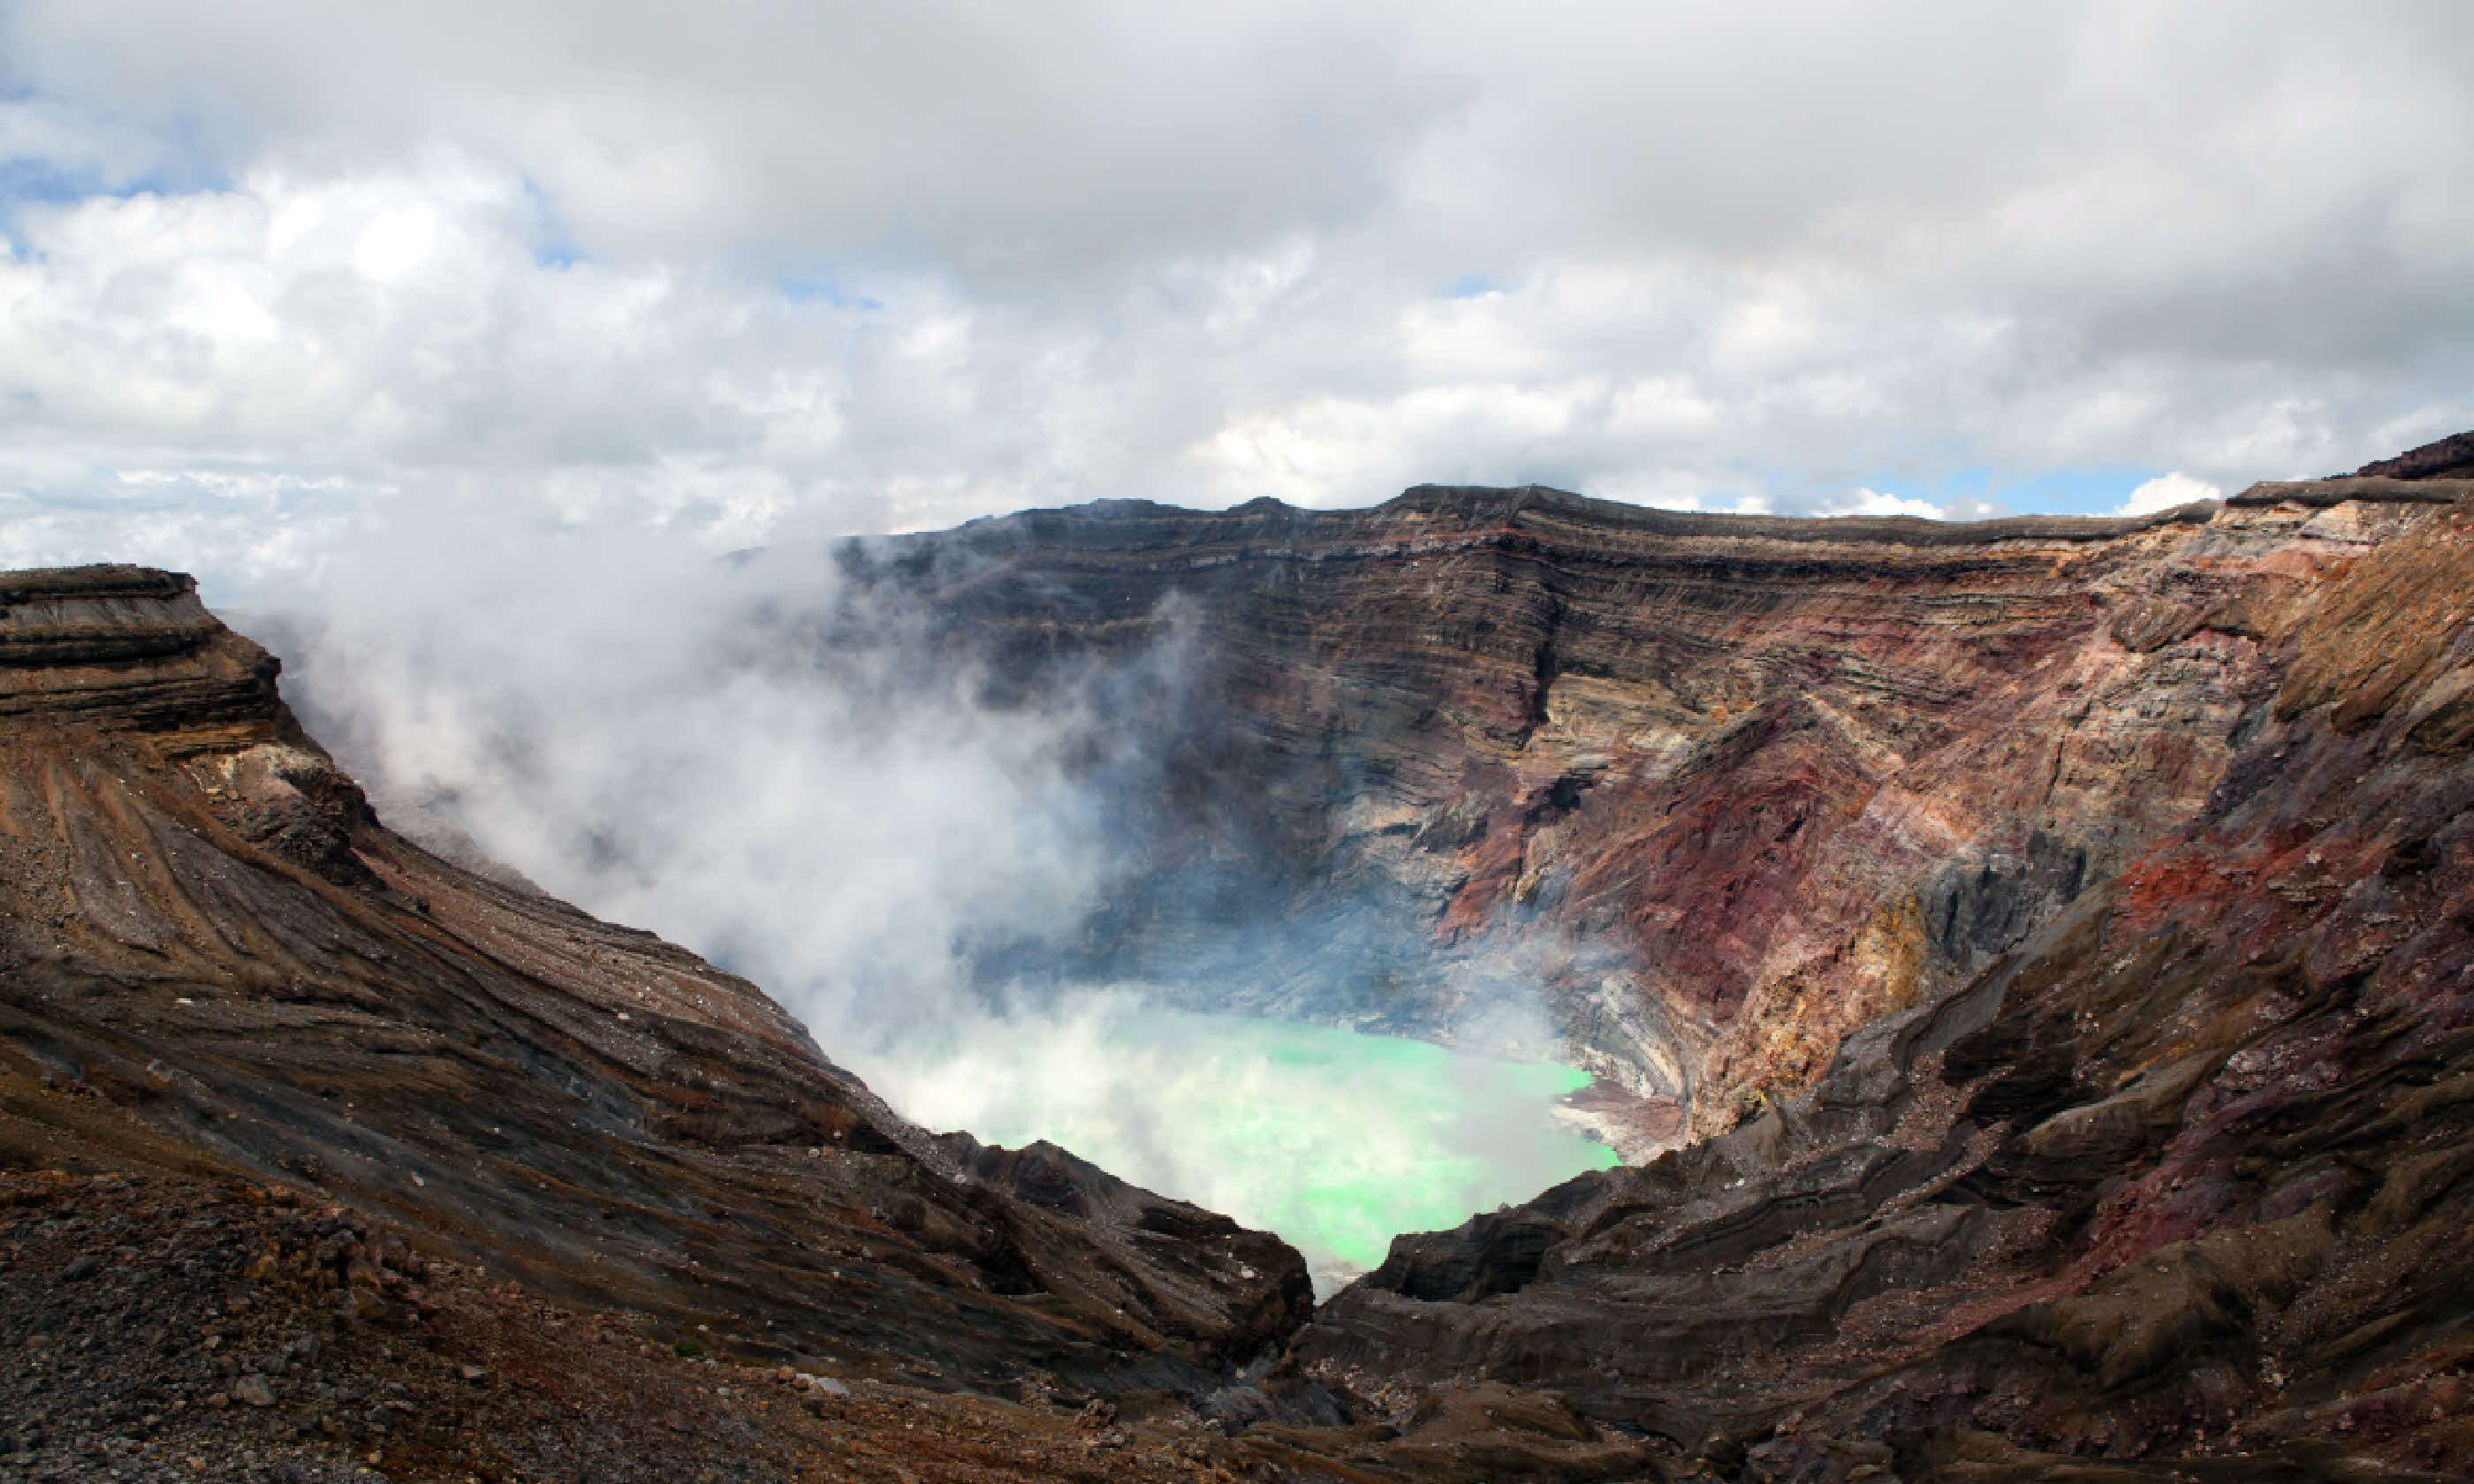 Crater of the volcano Aso, Japan (Shutterstock)